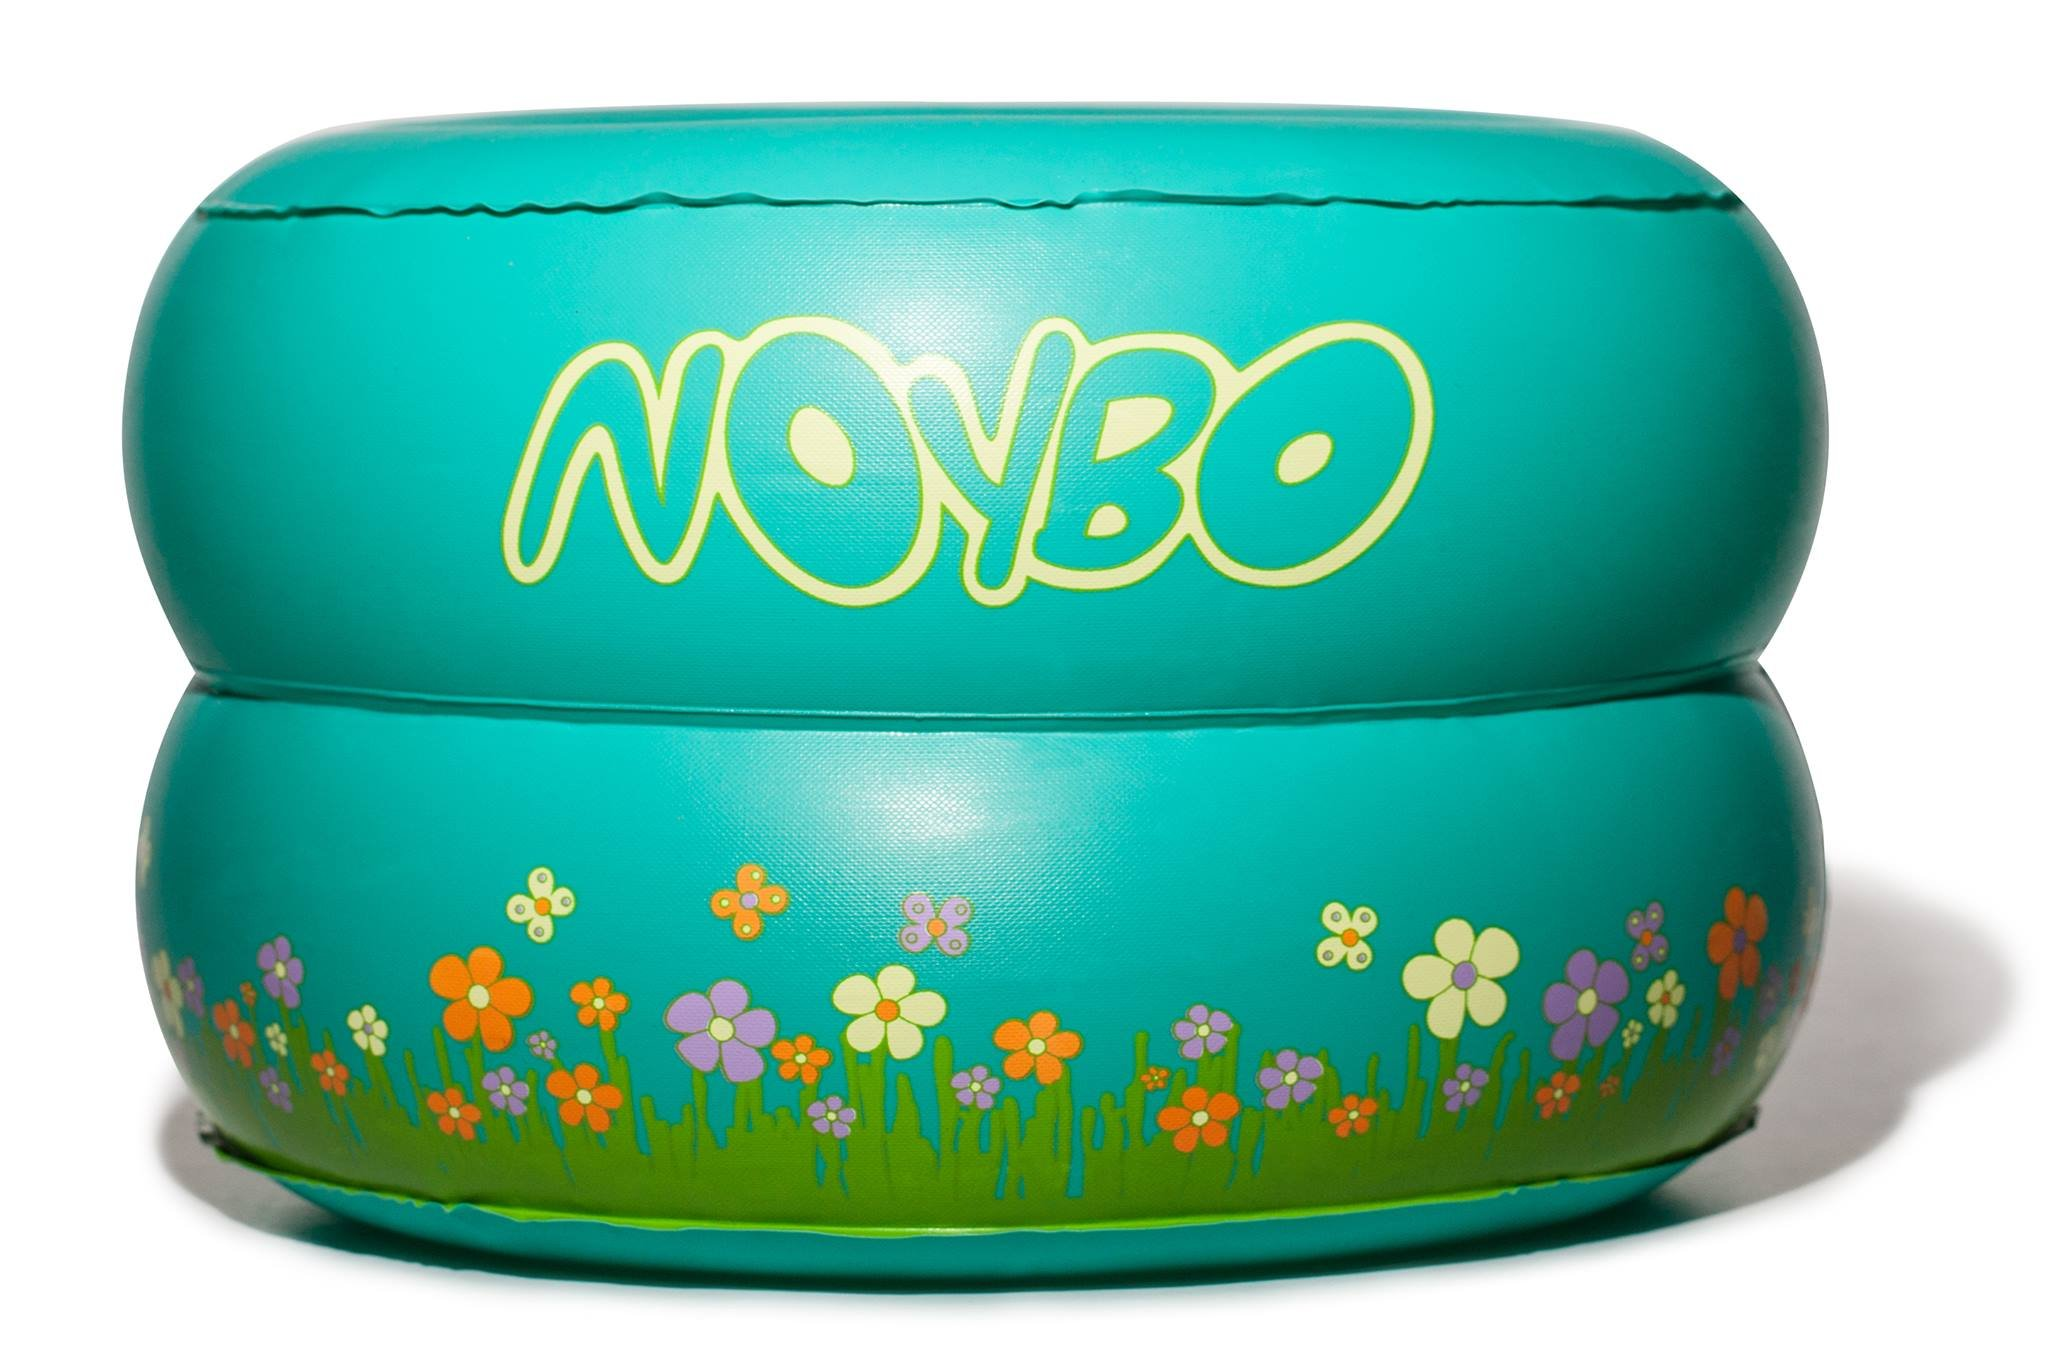 5382a5f0d3e NOYBO Travel Squatty Potty Seat for Summer Camping and Potty Chair Training  NEW